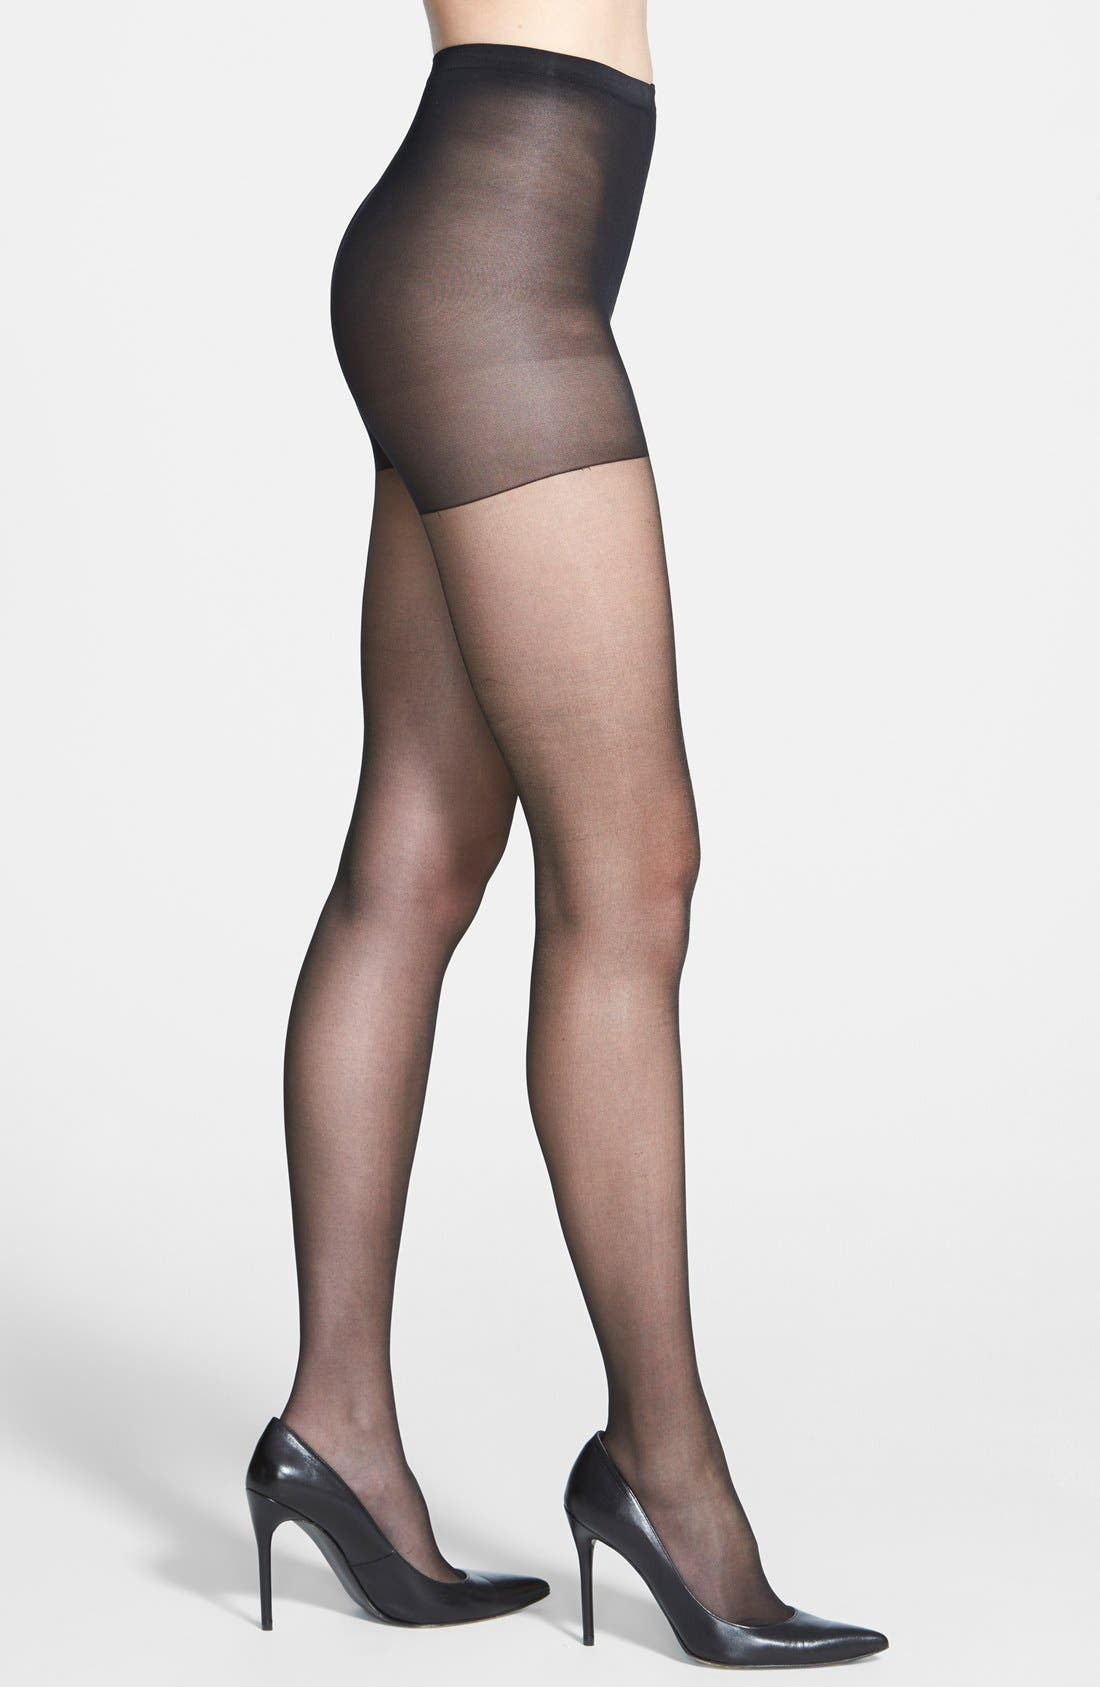 Shimmer Sheer Control Top Pantyhose,                         Main,                         color,